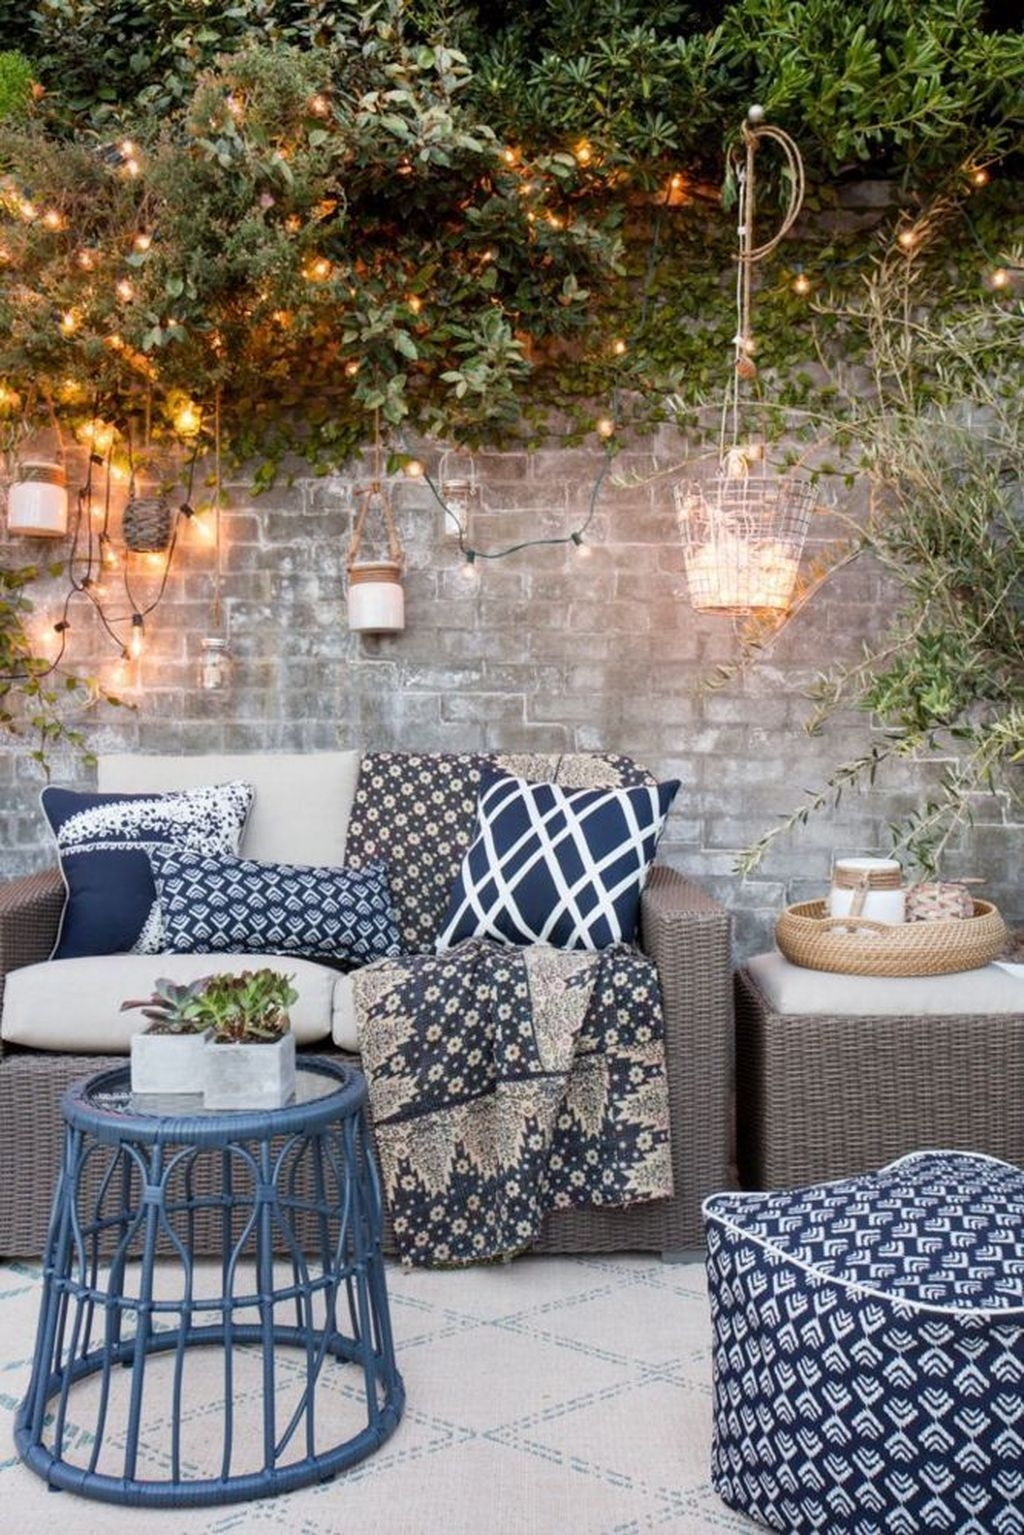 Inspiring Outdoor Lighting Ideas For Your Garden 17